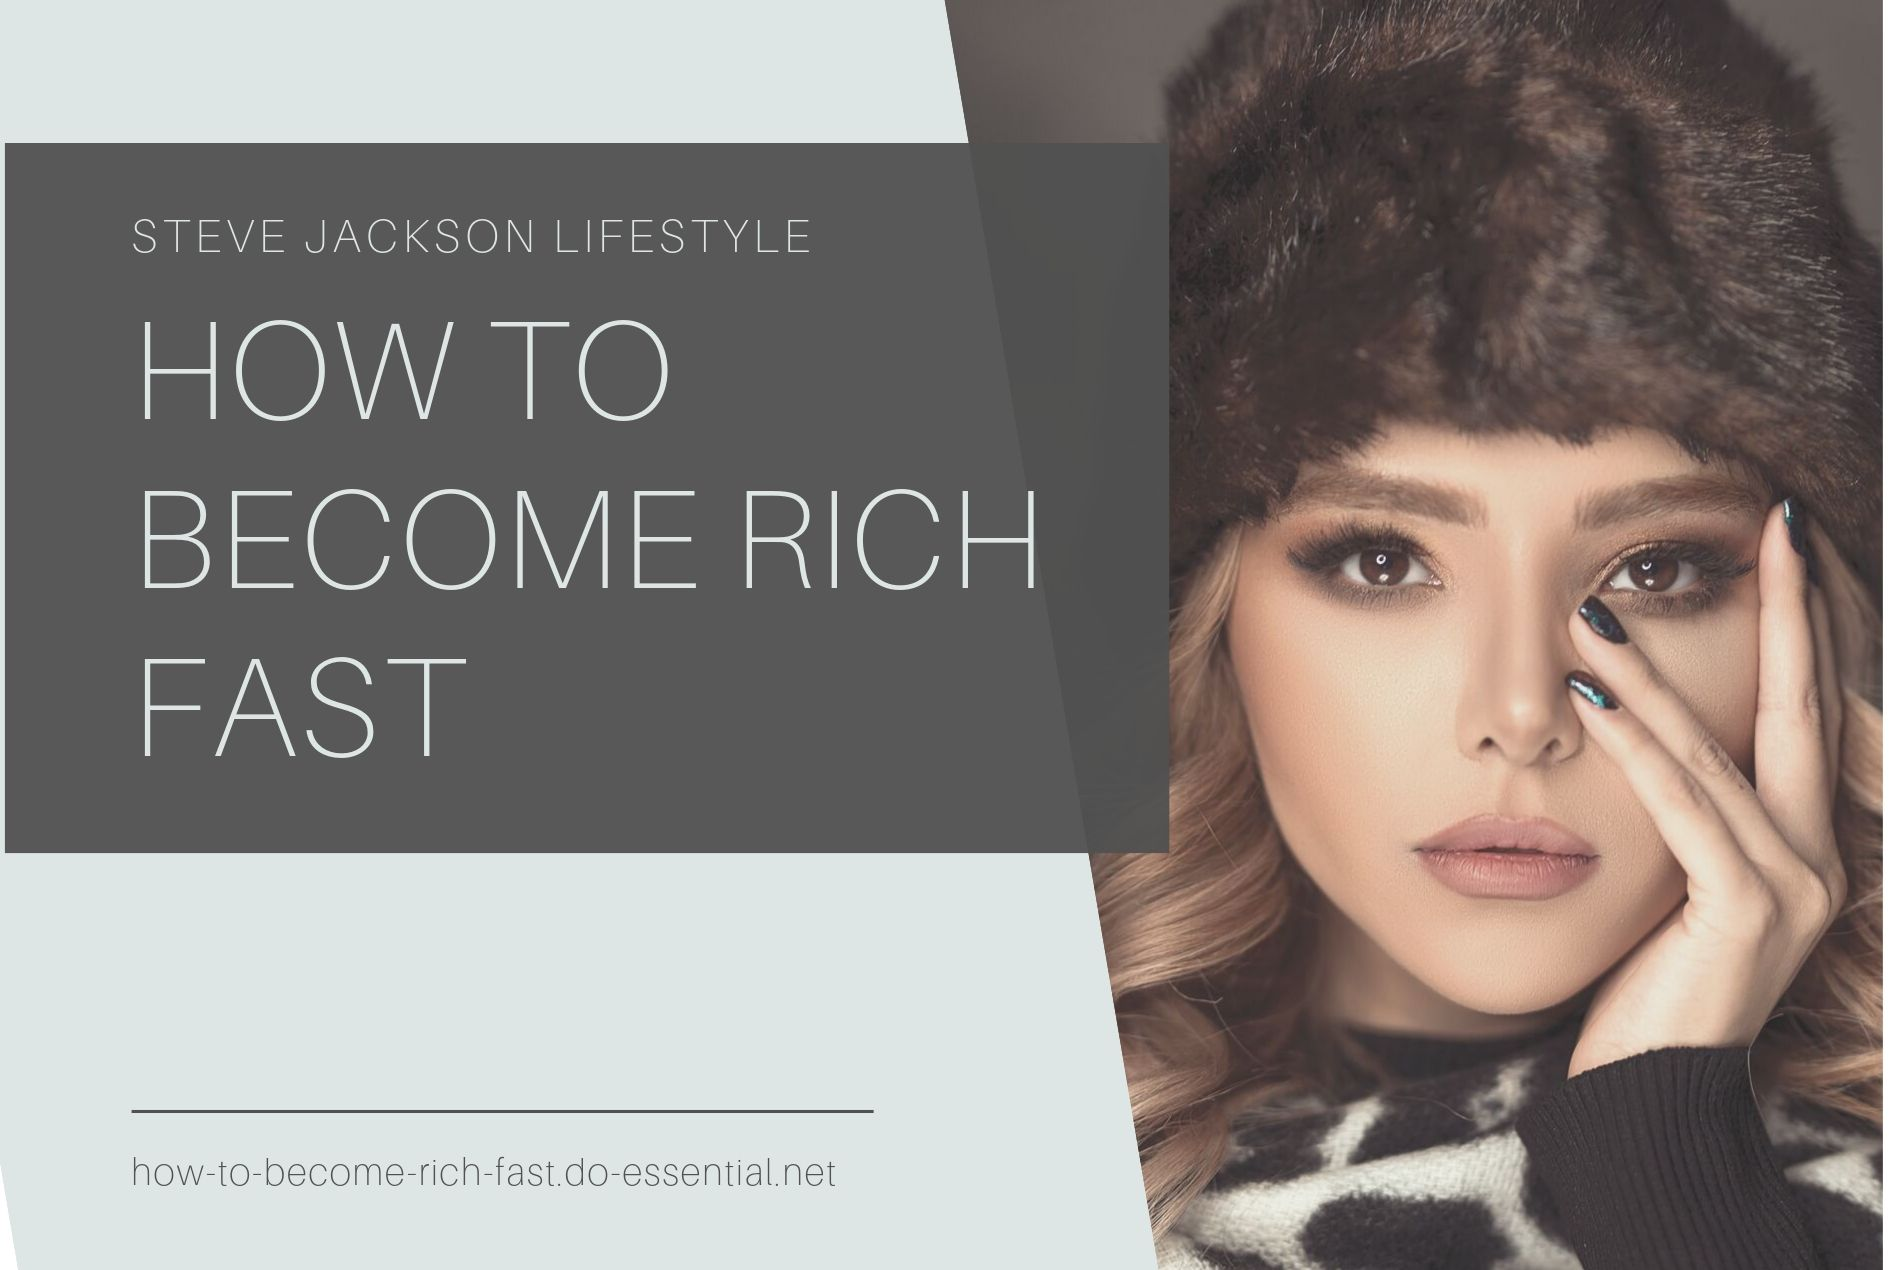 How to become rich fast